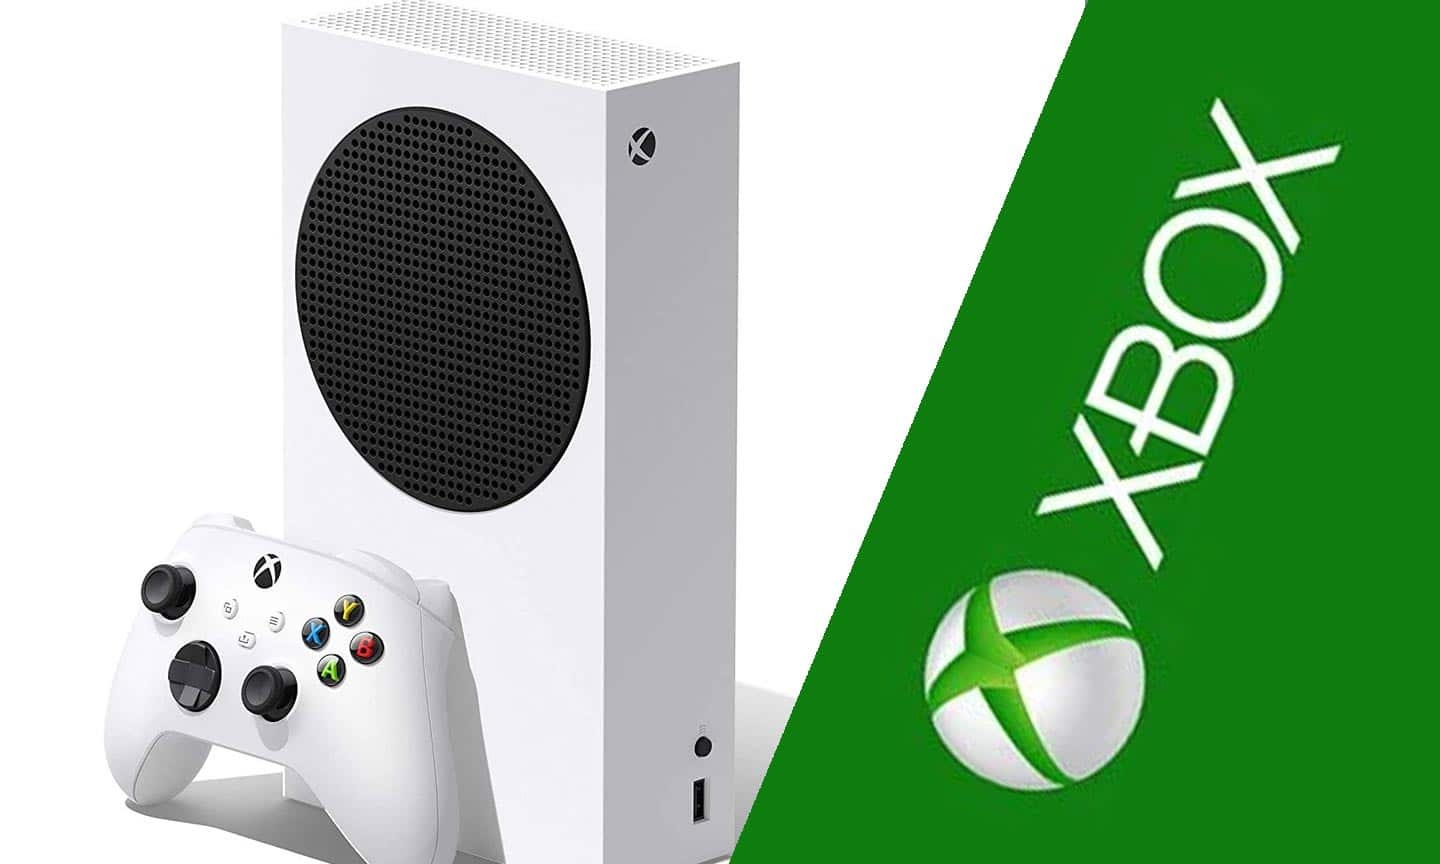 Xbox Series S: Will It Be The Current Generation's Best Selling Console?  - (c) Microsoft, Photo Editor: Daily J